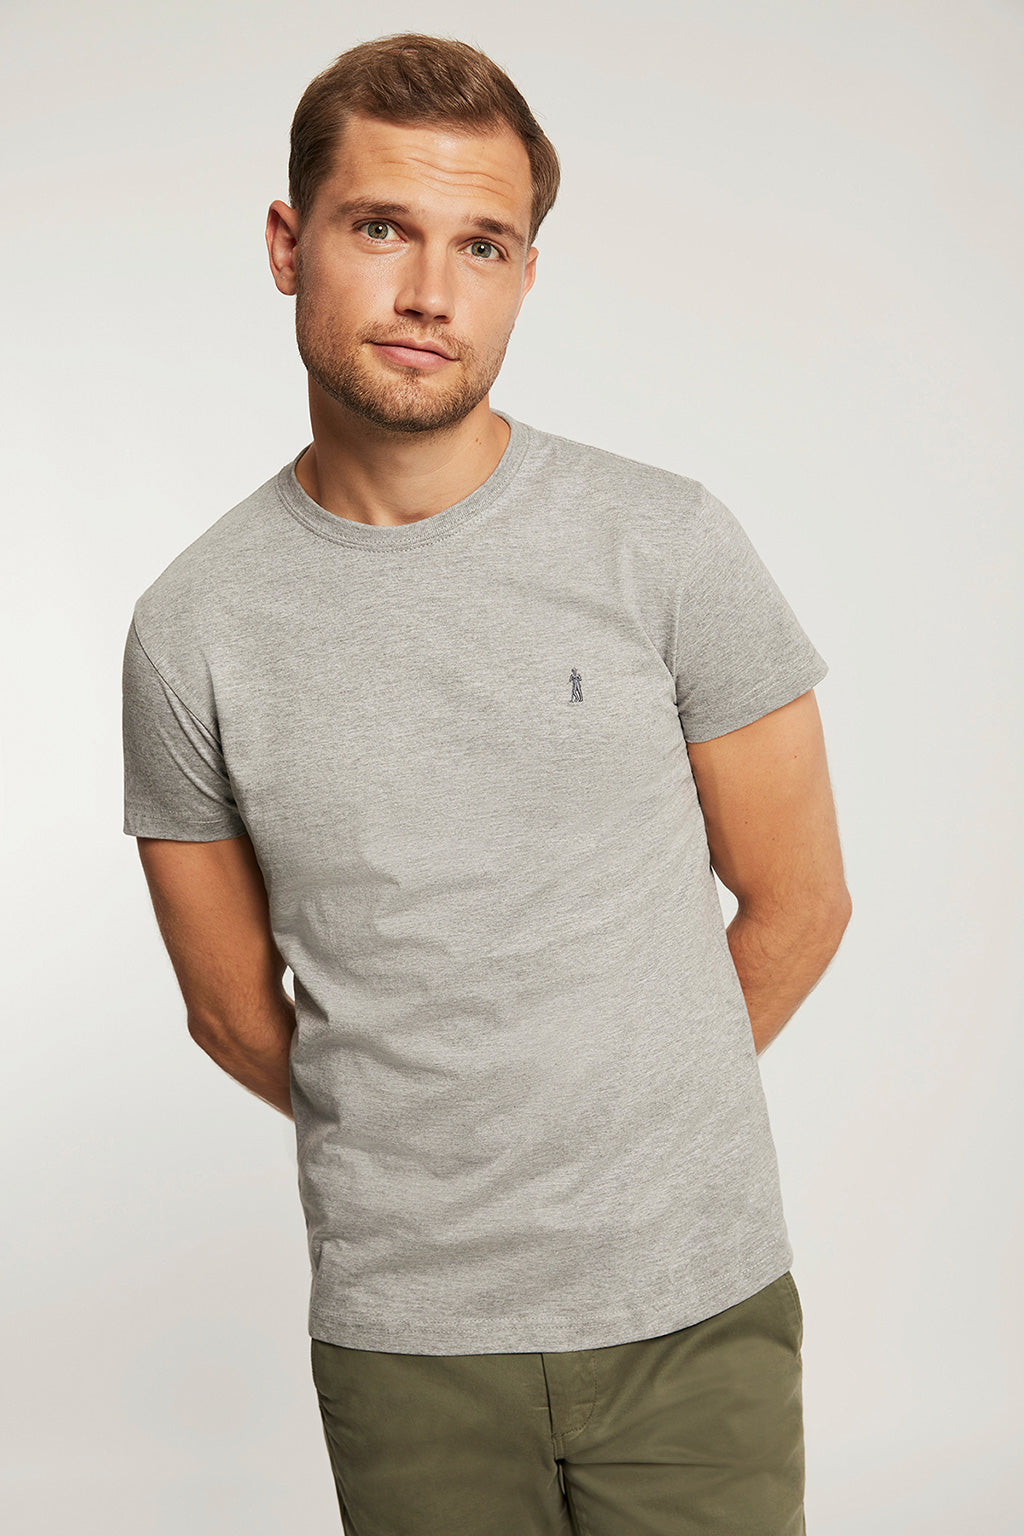 Regular fit grey vigore tee with embroidery